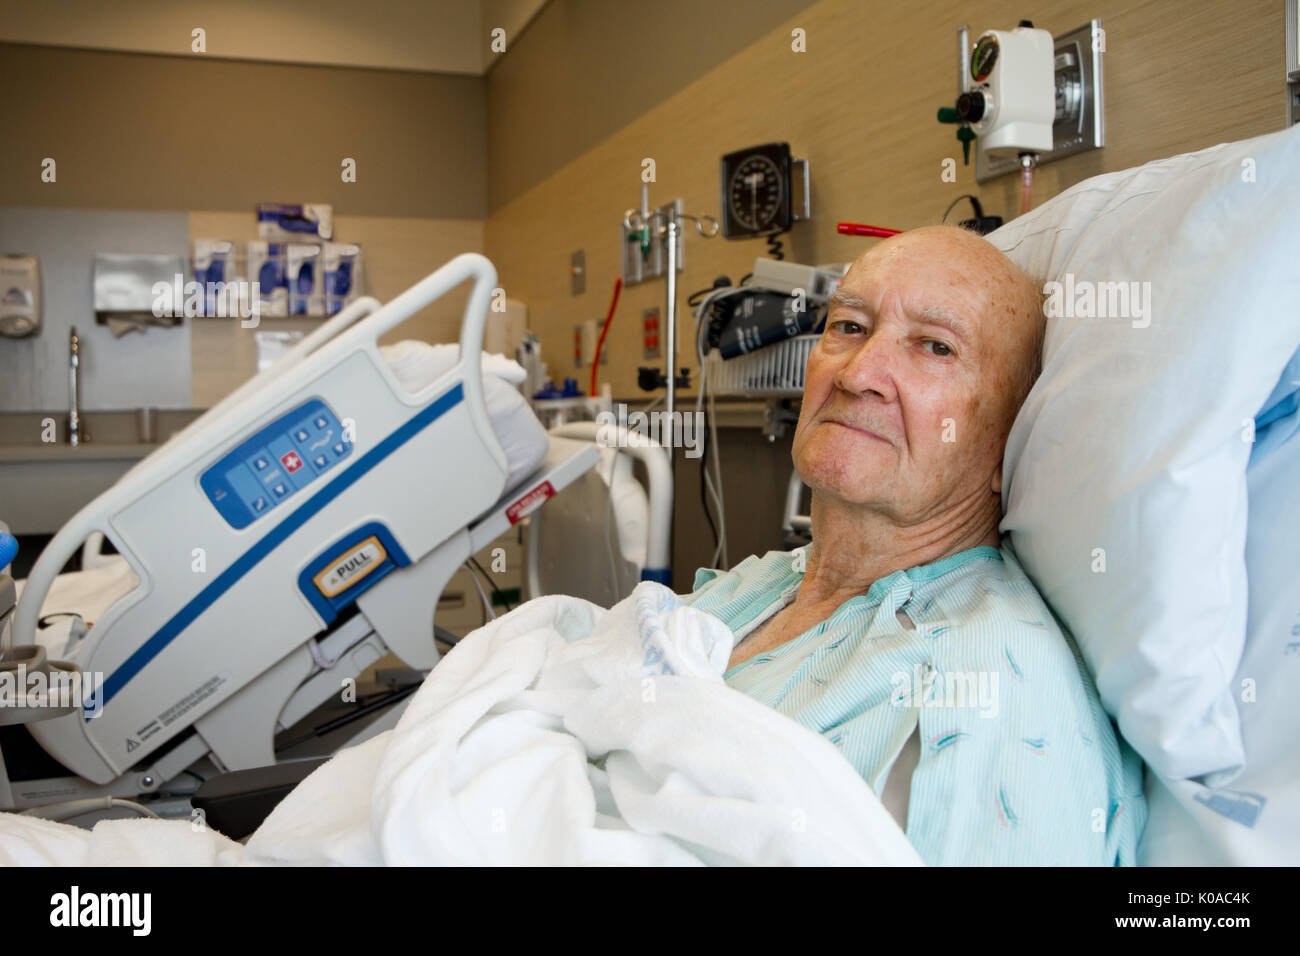 Elderly Male Patient Sitting Up in Hospital Bed - Stock Image